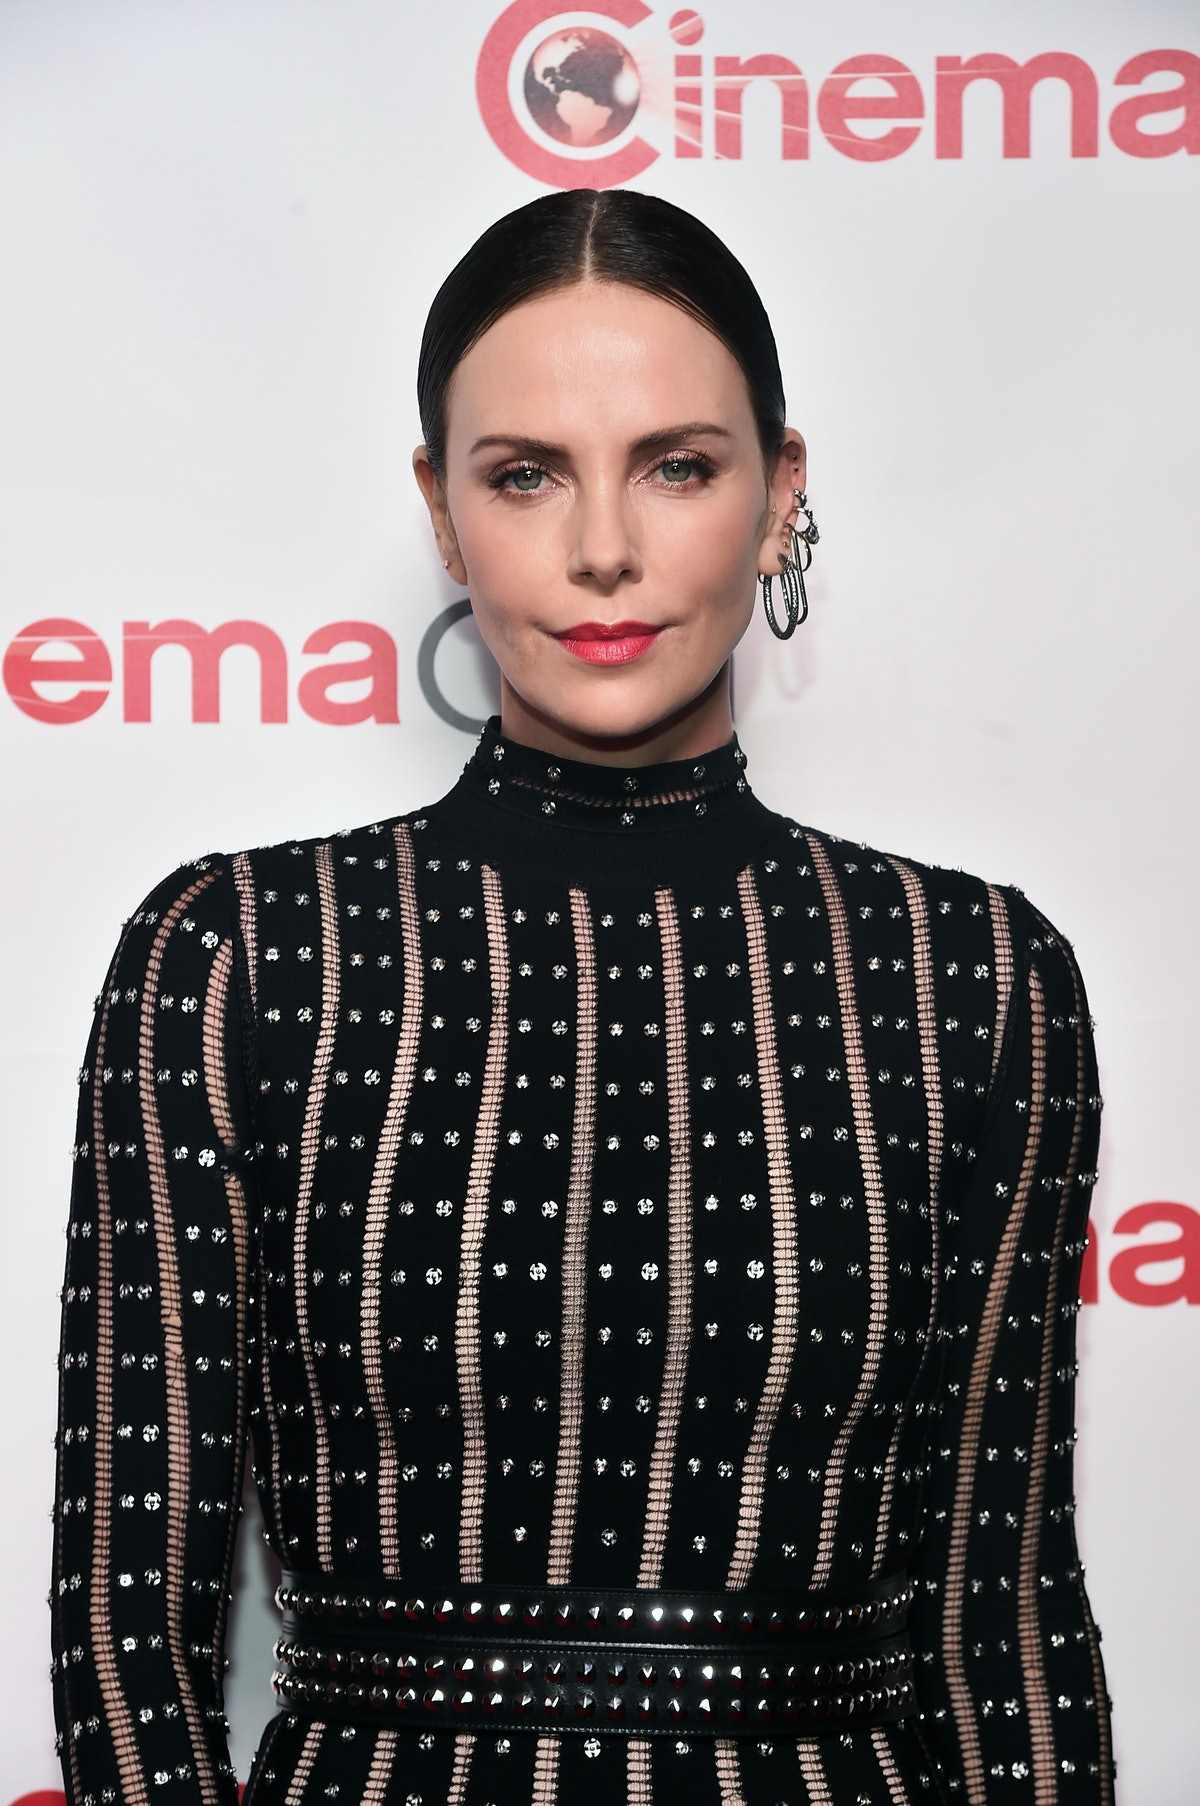 Charlize Theron's Comments About Her Daughter's Gender Identity Focus On Celebrating Who She Is